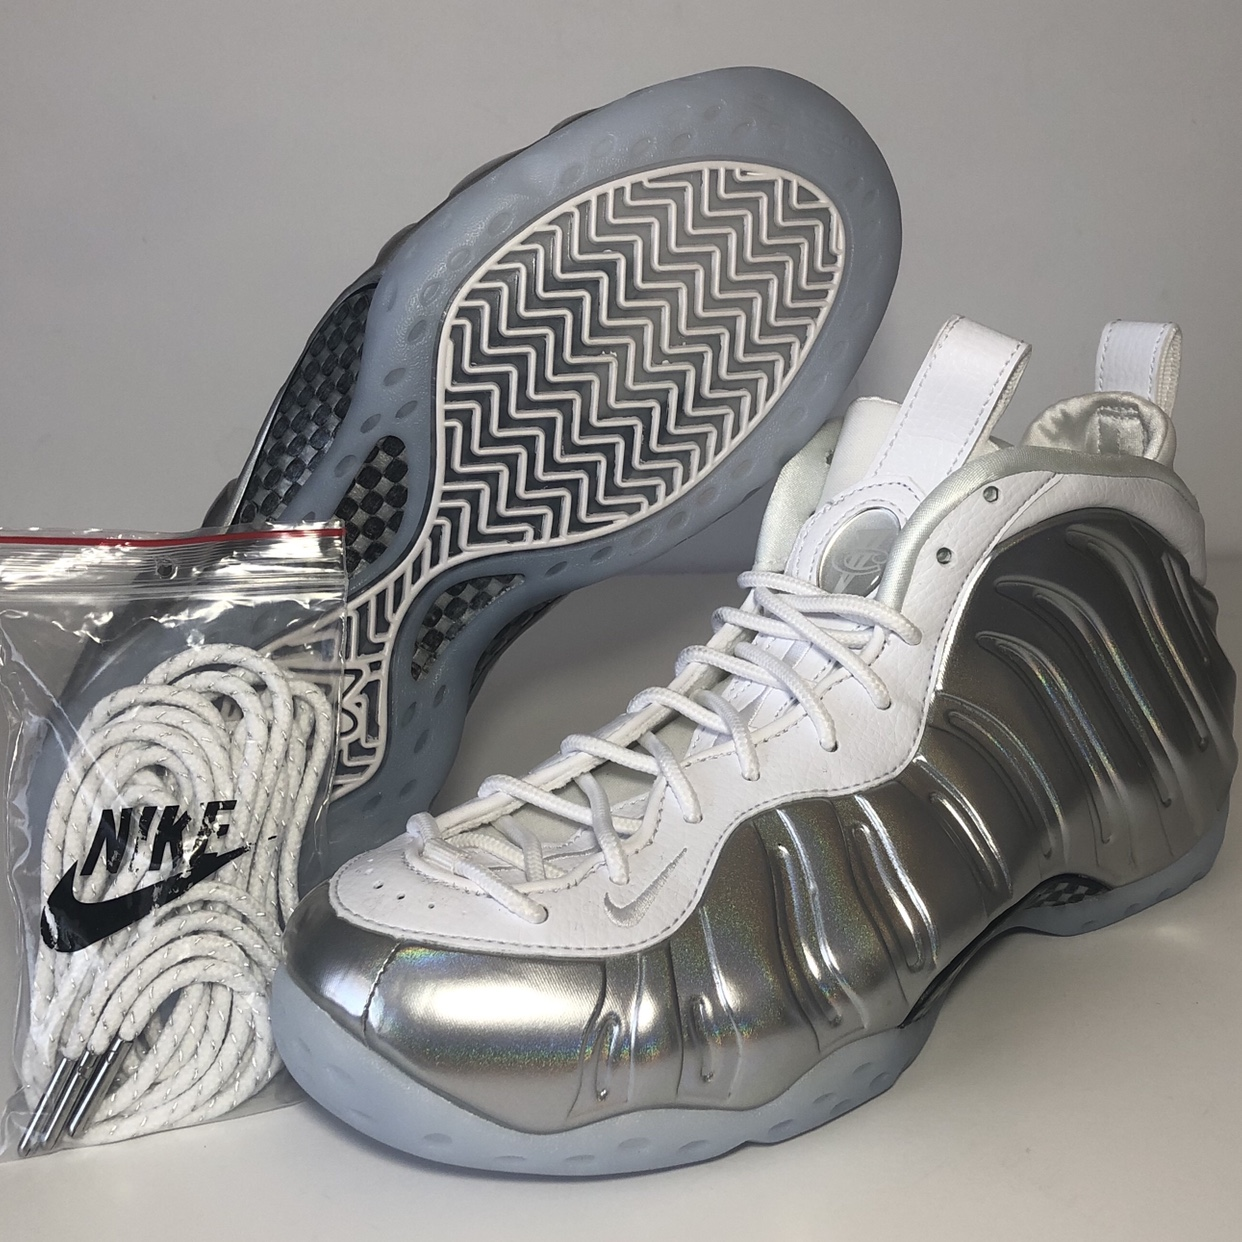 NEW Nike Air Foamposite One Summit White Marble eBay